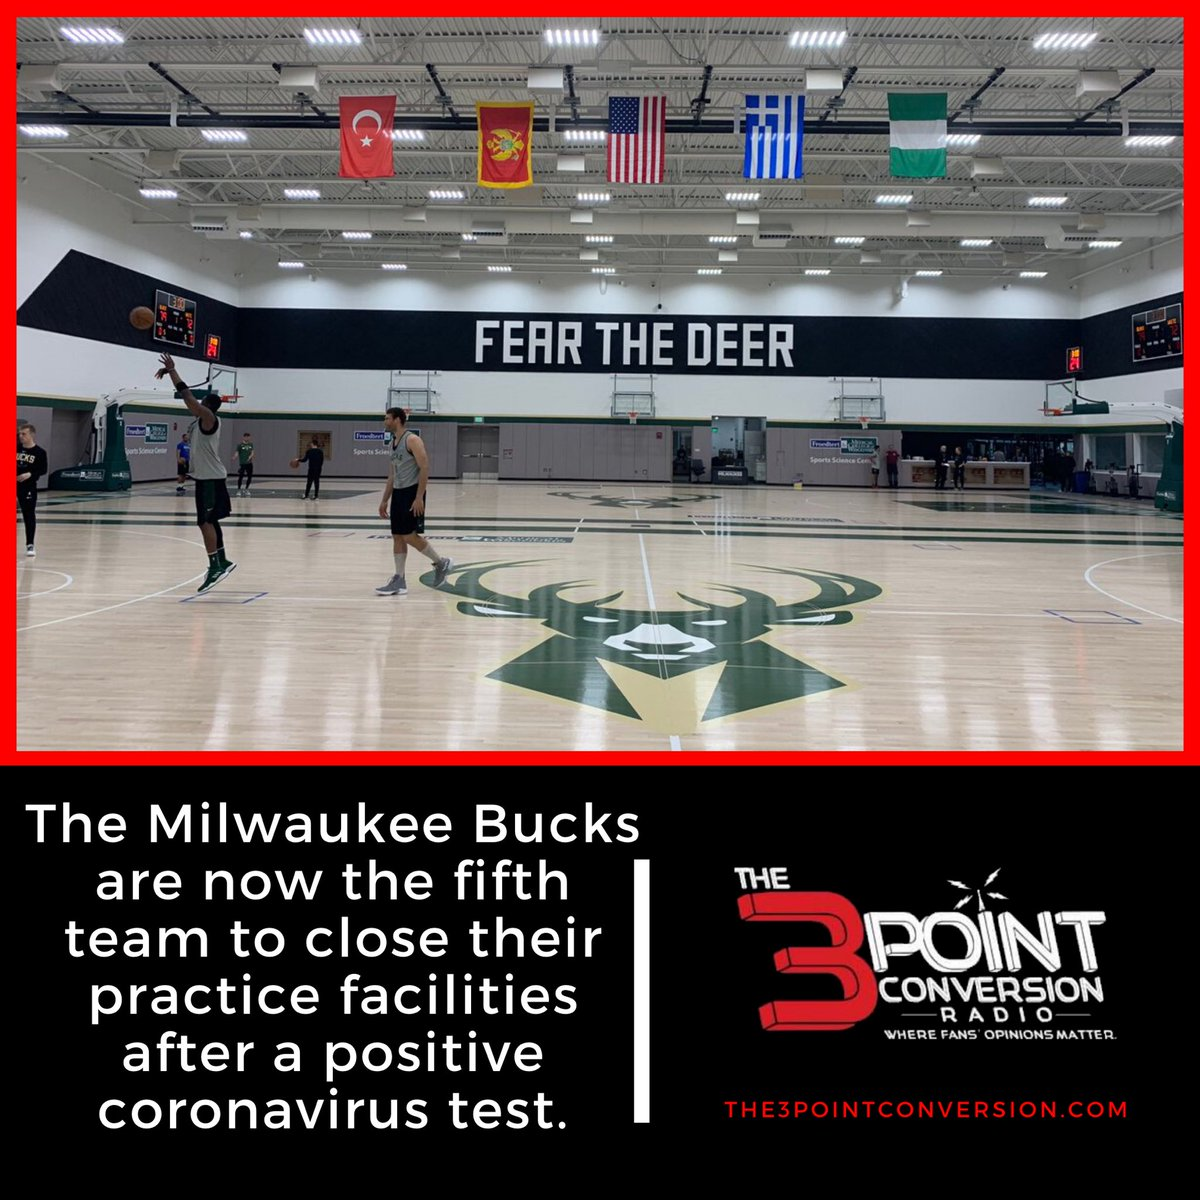 The Milwaukee Bucks are now the fifth team to close their practice facilities after a positive coronavirus test.  #NBA   #FearTheDeer   #3ptcnvrsn https://t.co/KuW1m9EhXa